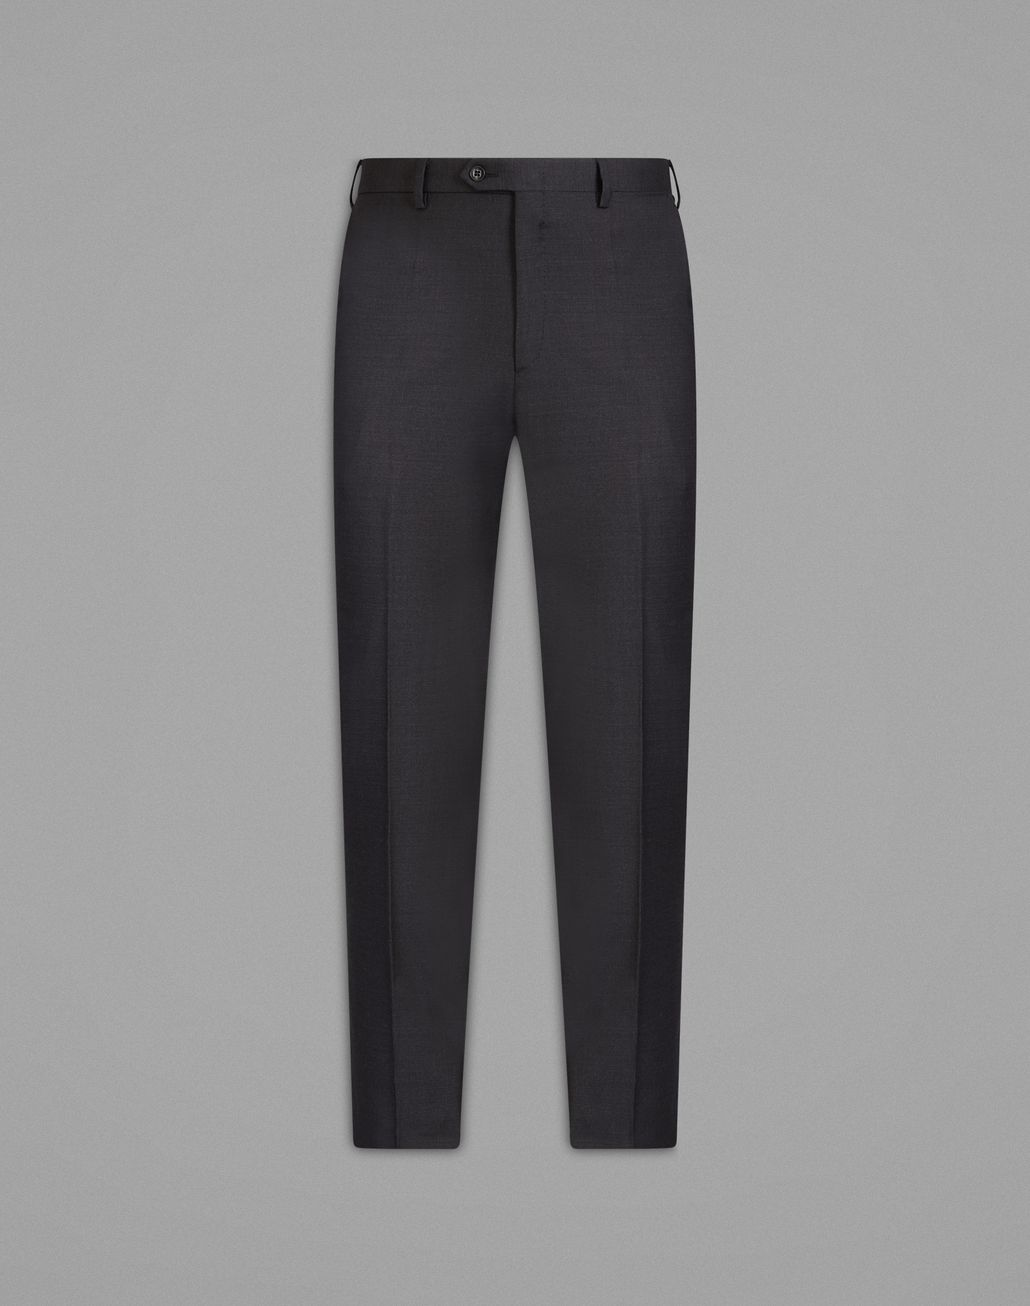 BRIONI 'Essential' Grey Tigullio Trousers Trousers [*** pickupInStoreShippingNotGuaranteed_info ***] f